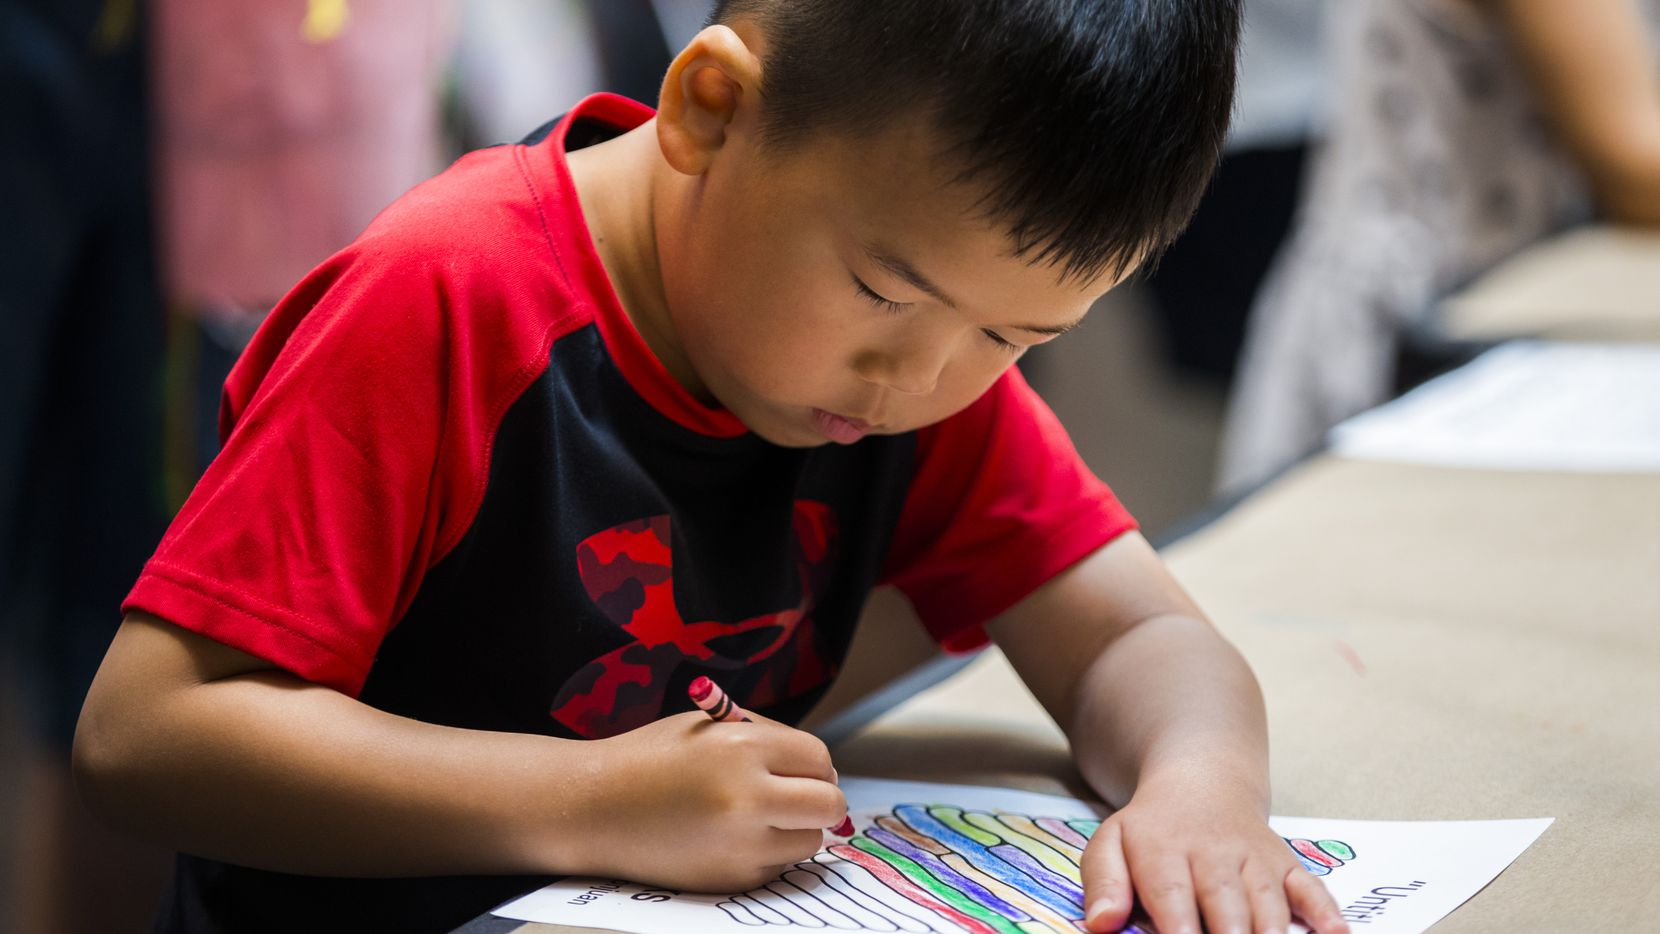 ArtRocks at NorthPark Center celebrates Lunar New Year with children's art projects.